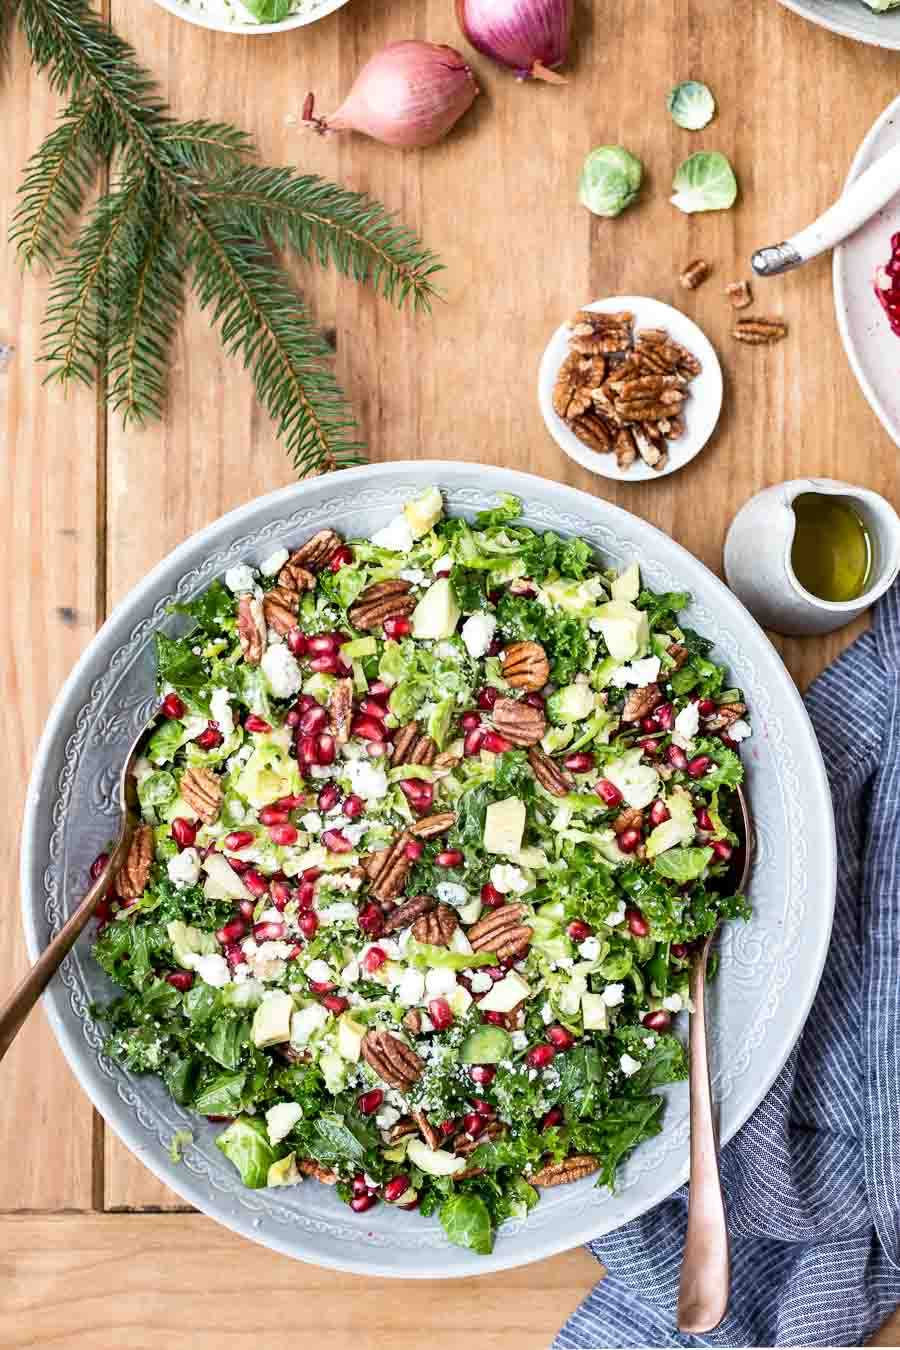 A bowl of vegetarian, colorful and festive brussels sprout kale salad recipe that is perfect for all your holiday menus.